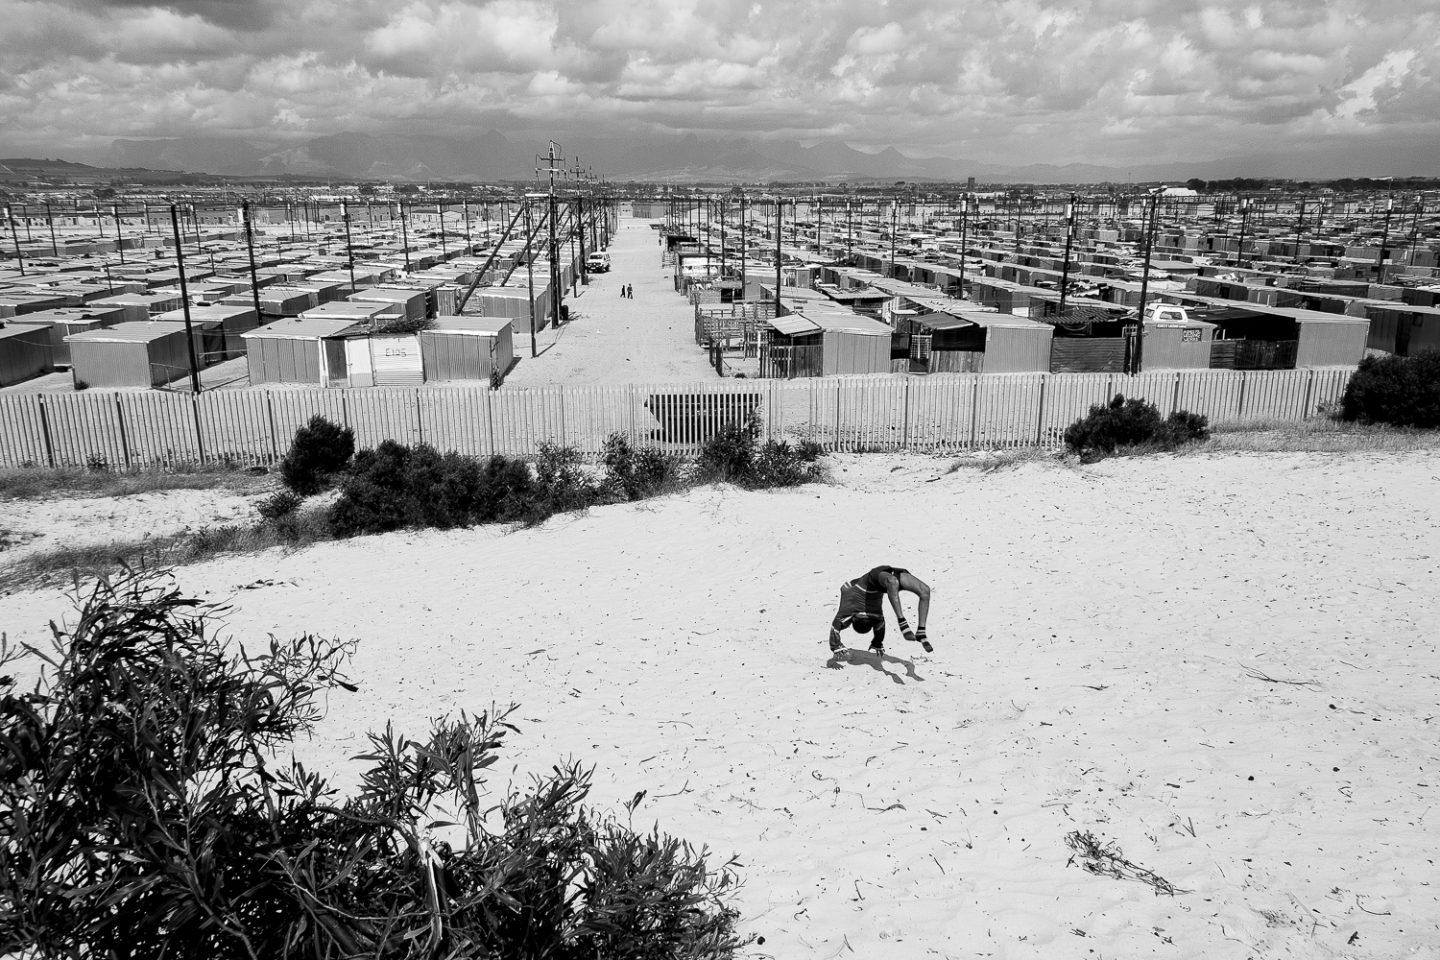 Overlooking one of Western Cape's temporary housing projects, Blikkiesdorp, 2010.